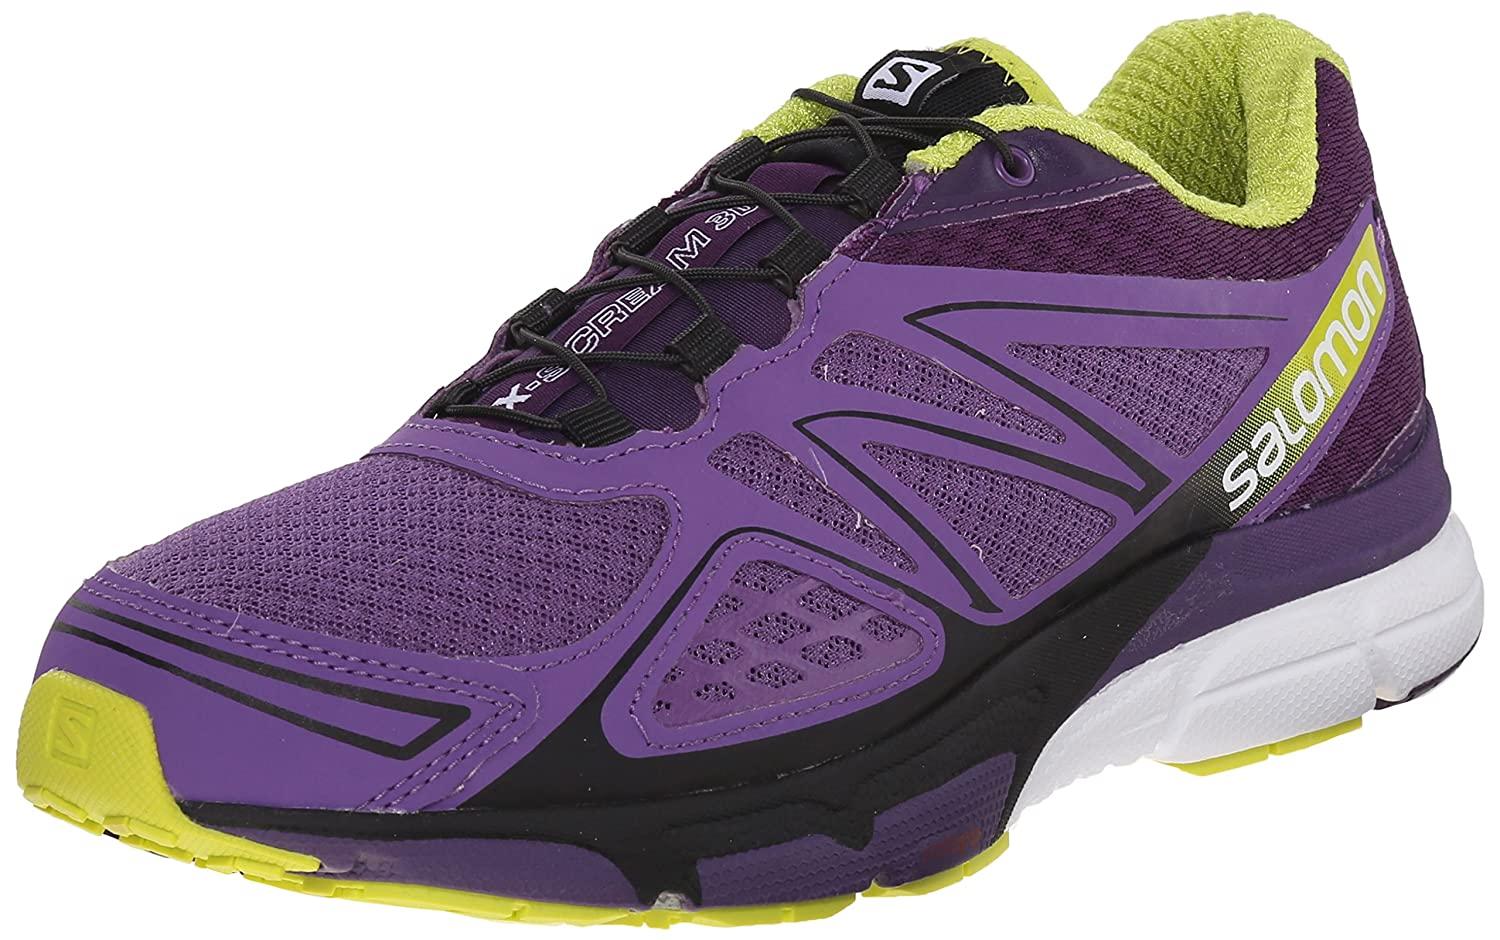 Salomon Women's X-Scream 3D W Trail Running Shoe B00ZLN822E 12 B(M) US|Rain Purple/Cosmic Purple/Gecko Green